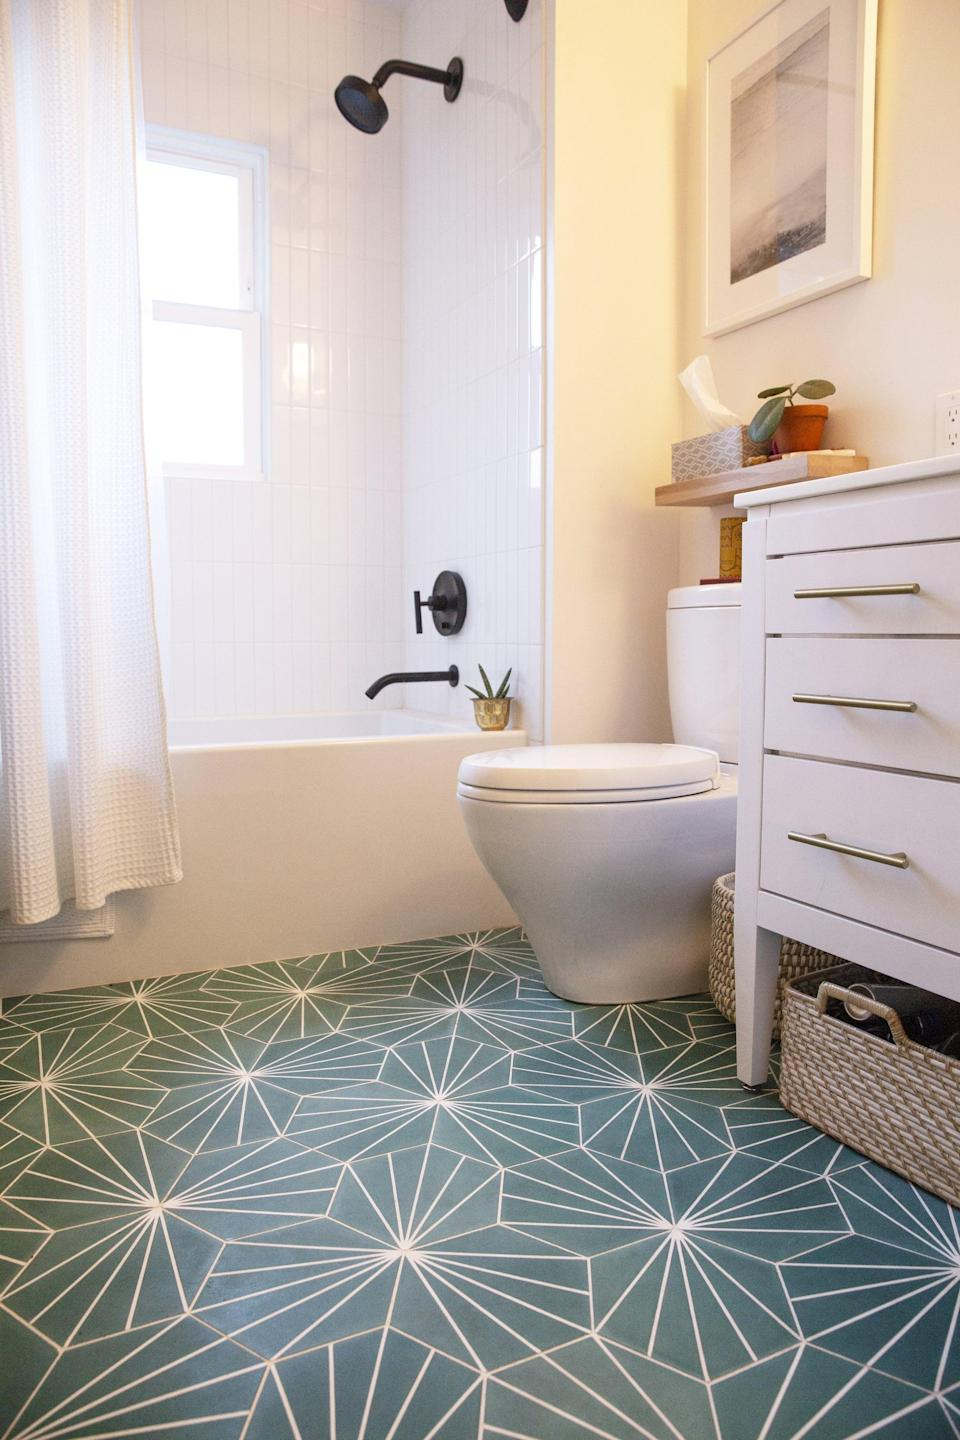 <p>Even if your bathroom came with a shower curtain, buy one that you love. It's one of the fastest, cheapest, and easiest ways to add personality and transform your bathroom, no matter the size.</p>